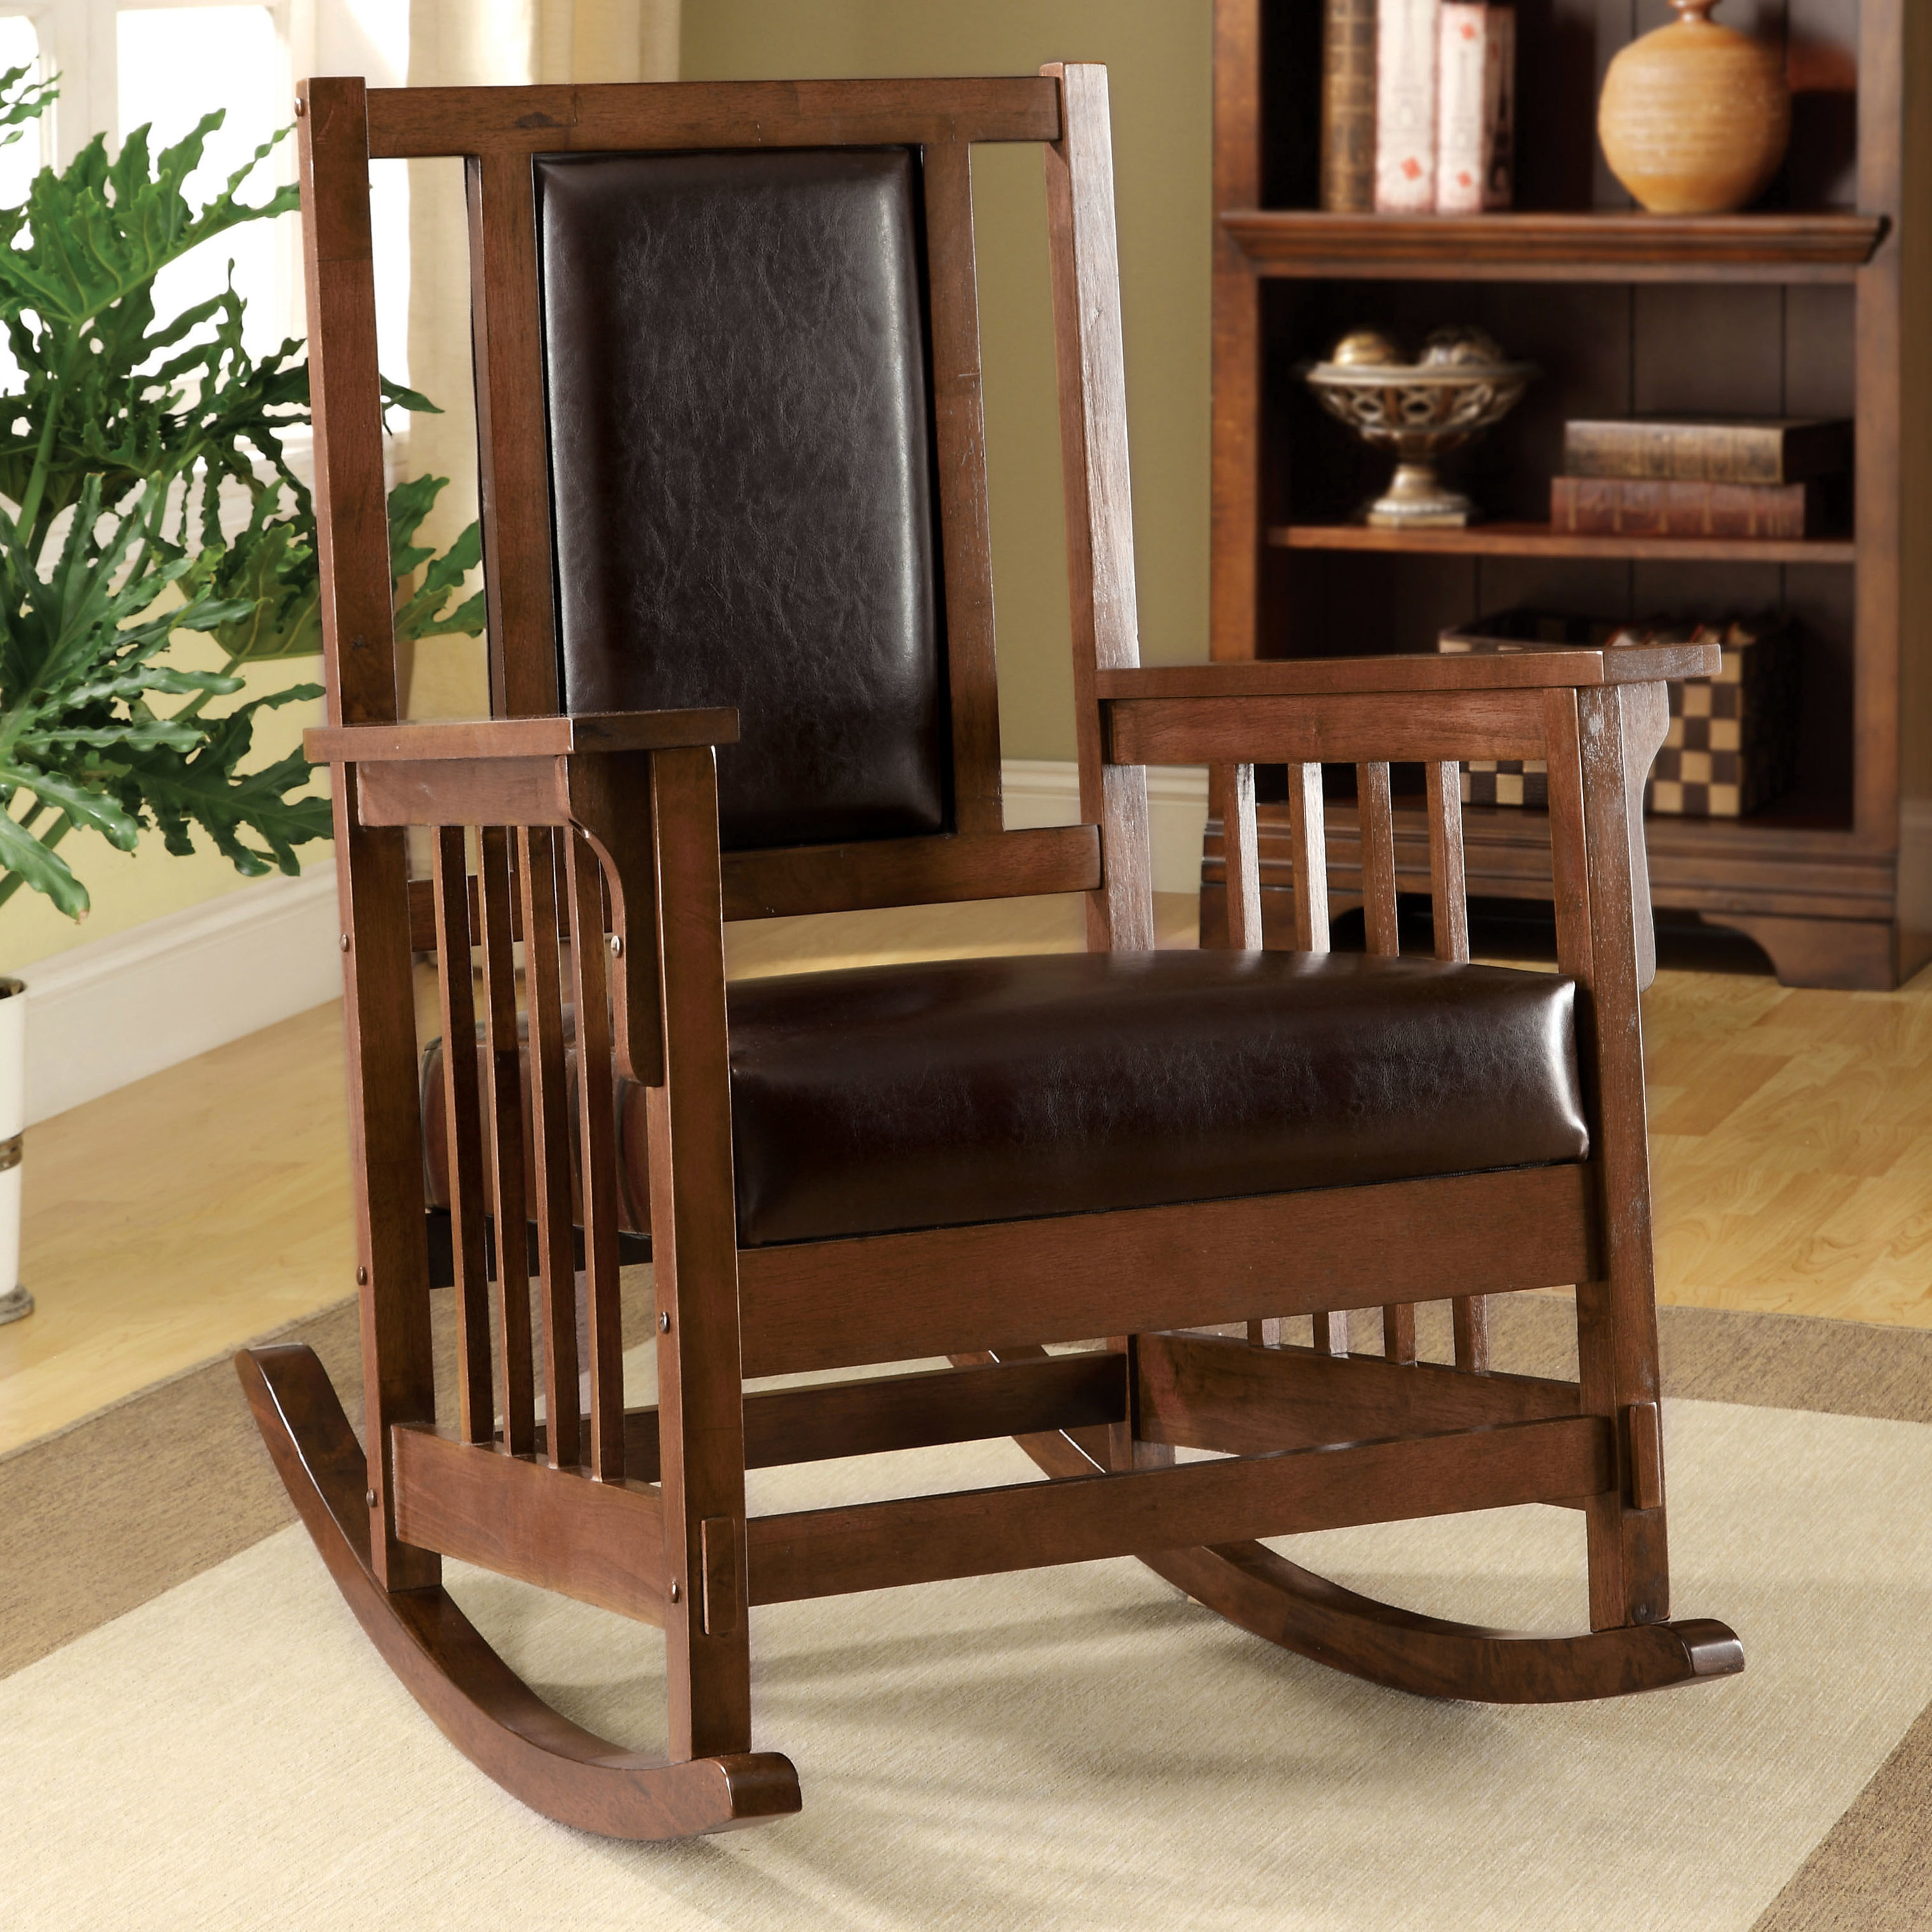 Valley Leatherette Arm Rocking Chair With Faux Leather Upholstered Wooden Rocking Chairs With Looped Arms, Brown (#17 of 20)